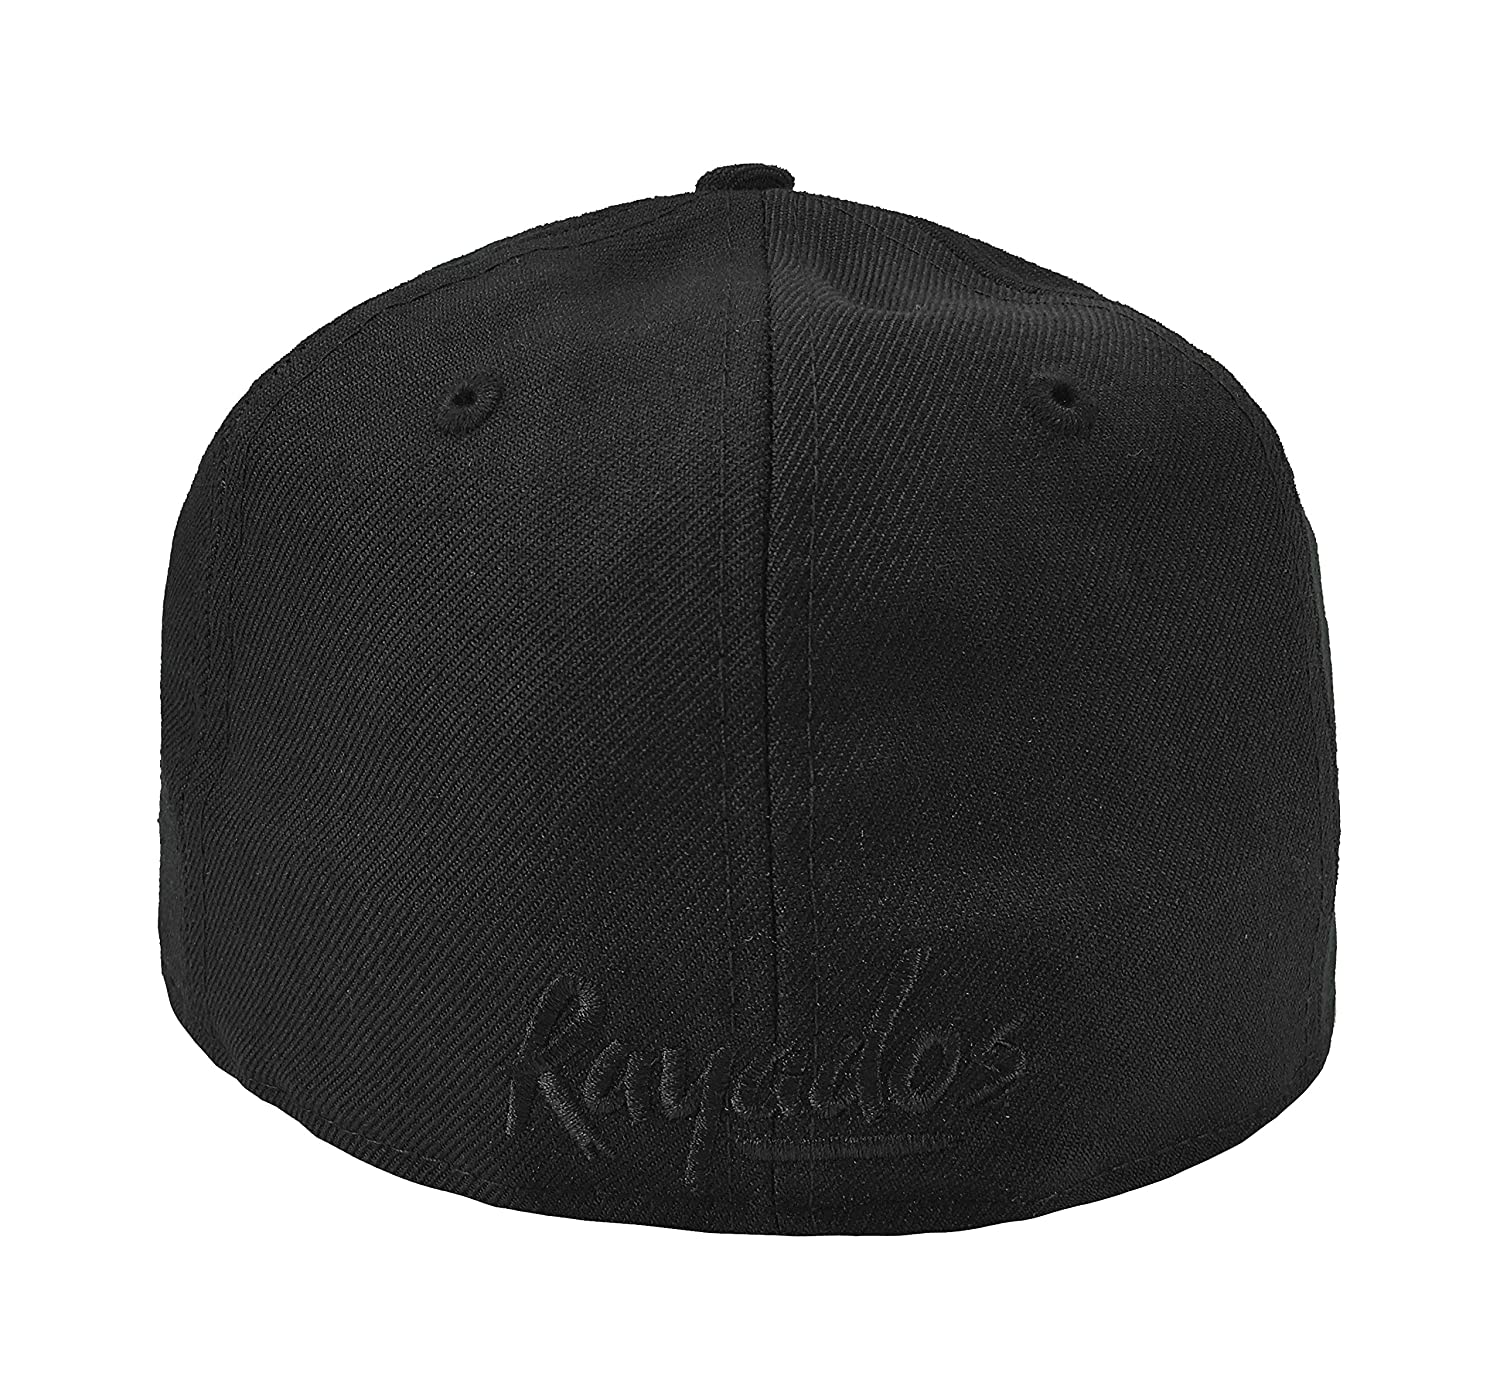 New Era 59Fifty Hat Rayados De Monterrey Liga Mexicana Black Fitted Cap at Amazon Mens Clothing store: